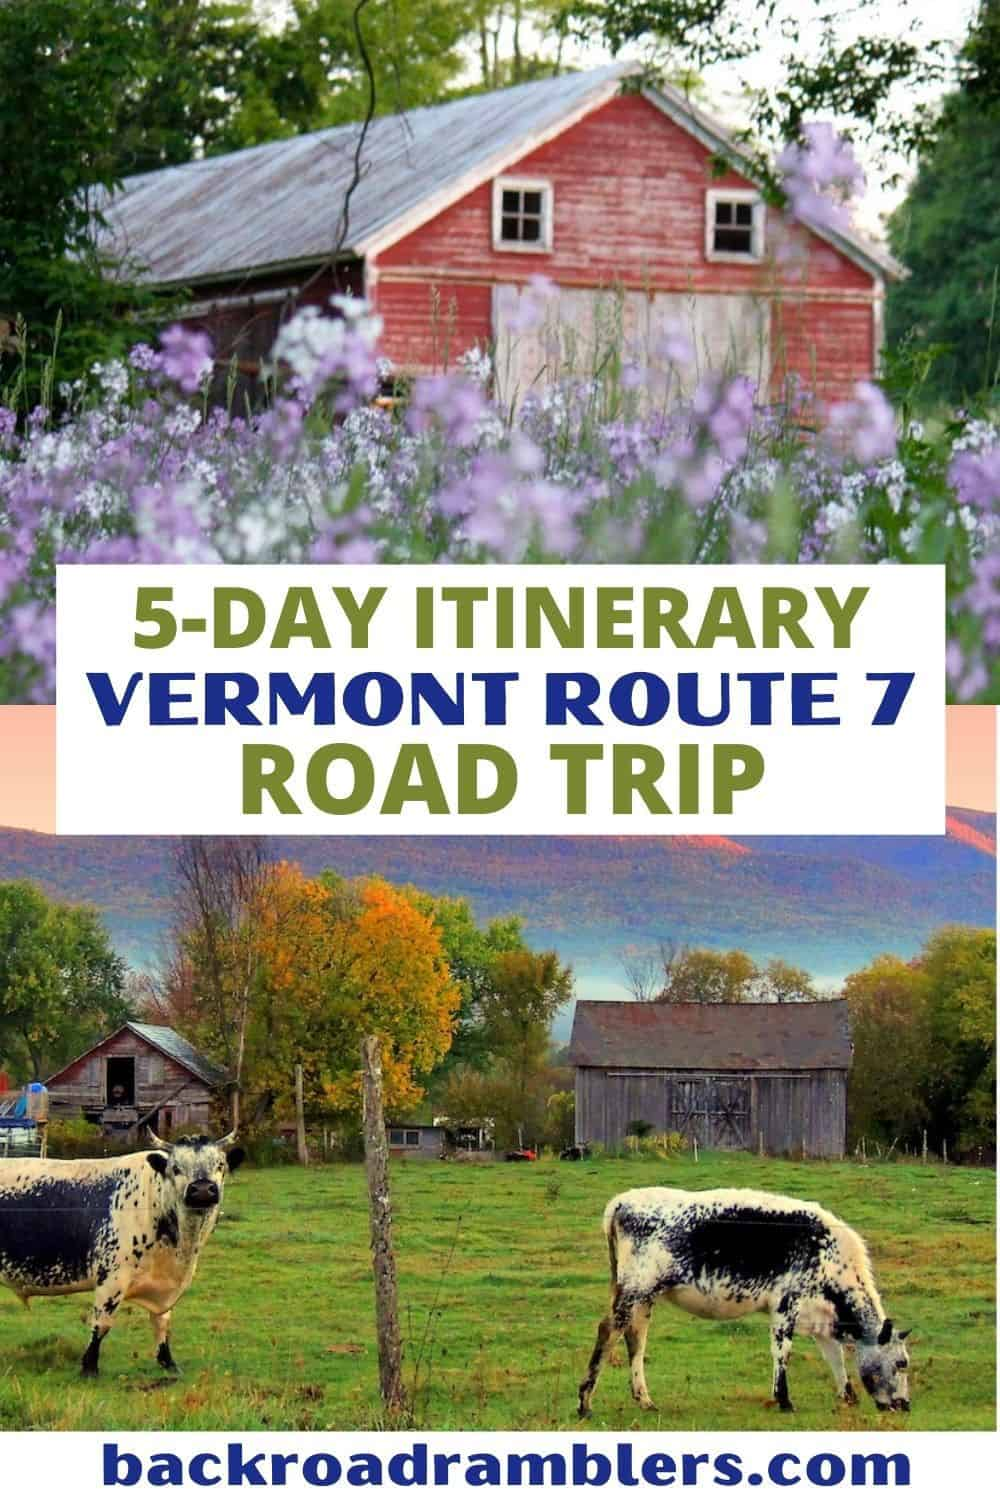 Two photos featuring Vermont farms. Text overlay: 5-Day Itinerary on Vermont Route 7.